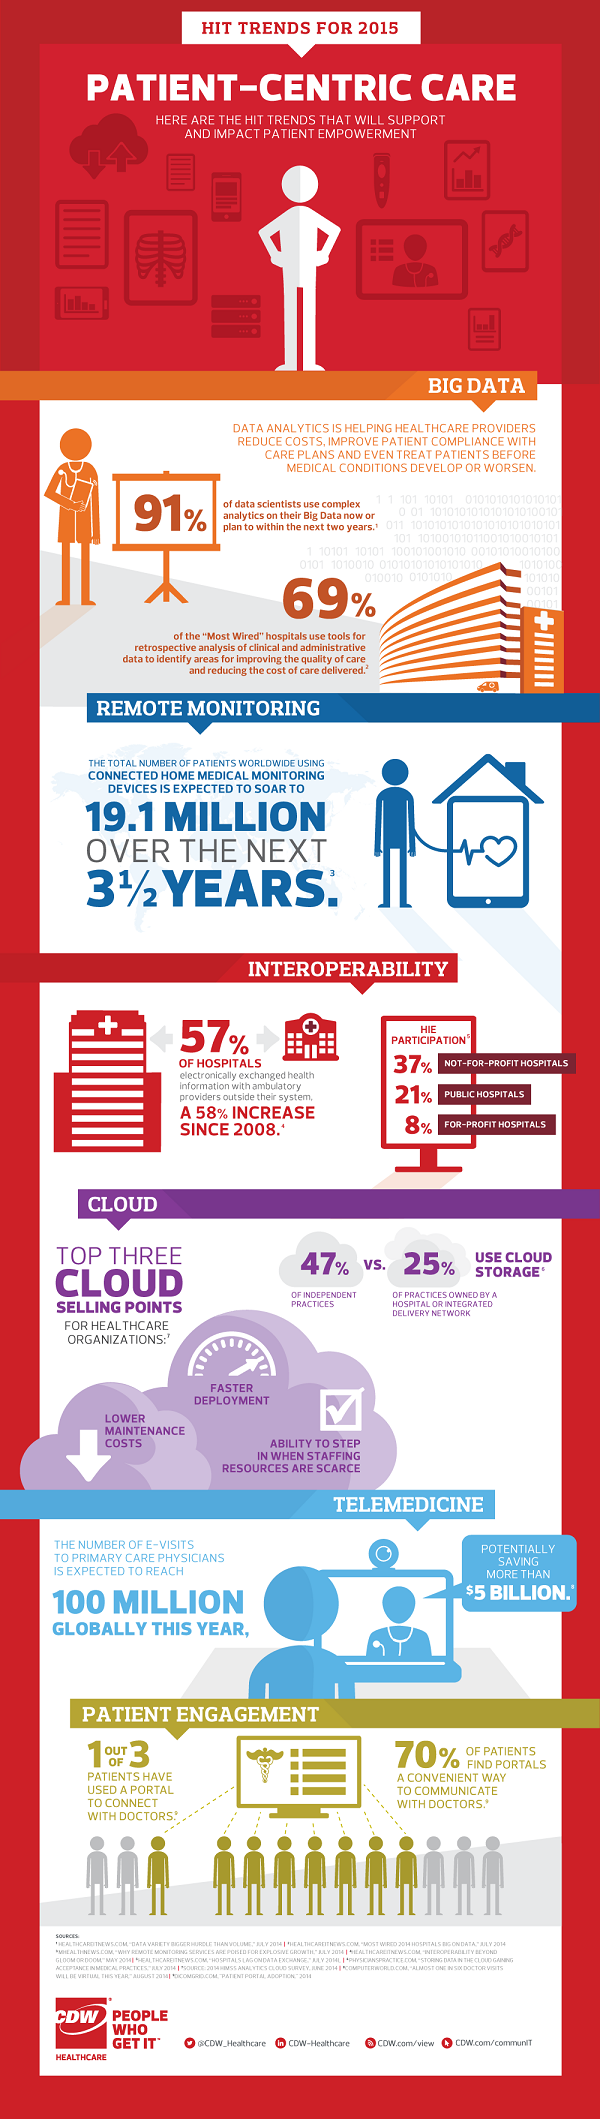 Healthcare_IT_Trends_Infographic_0215_1000